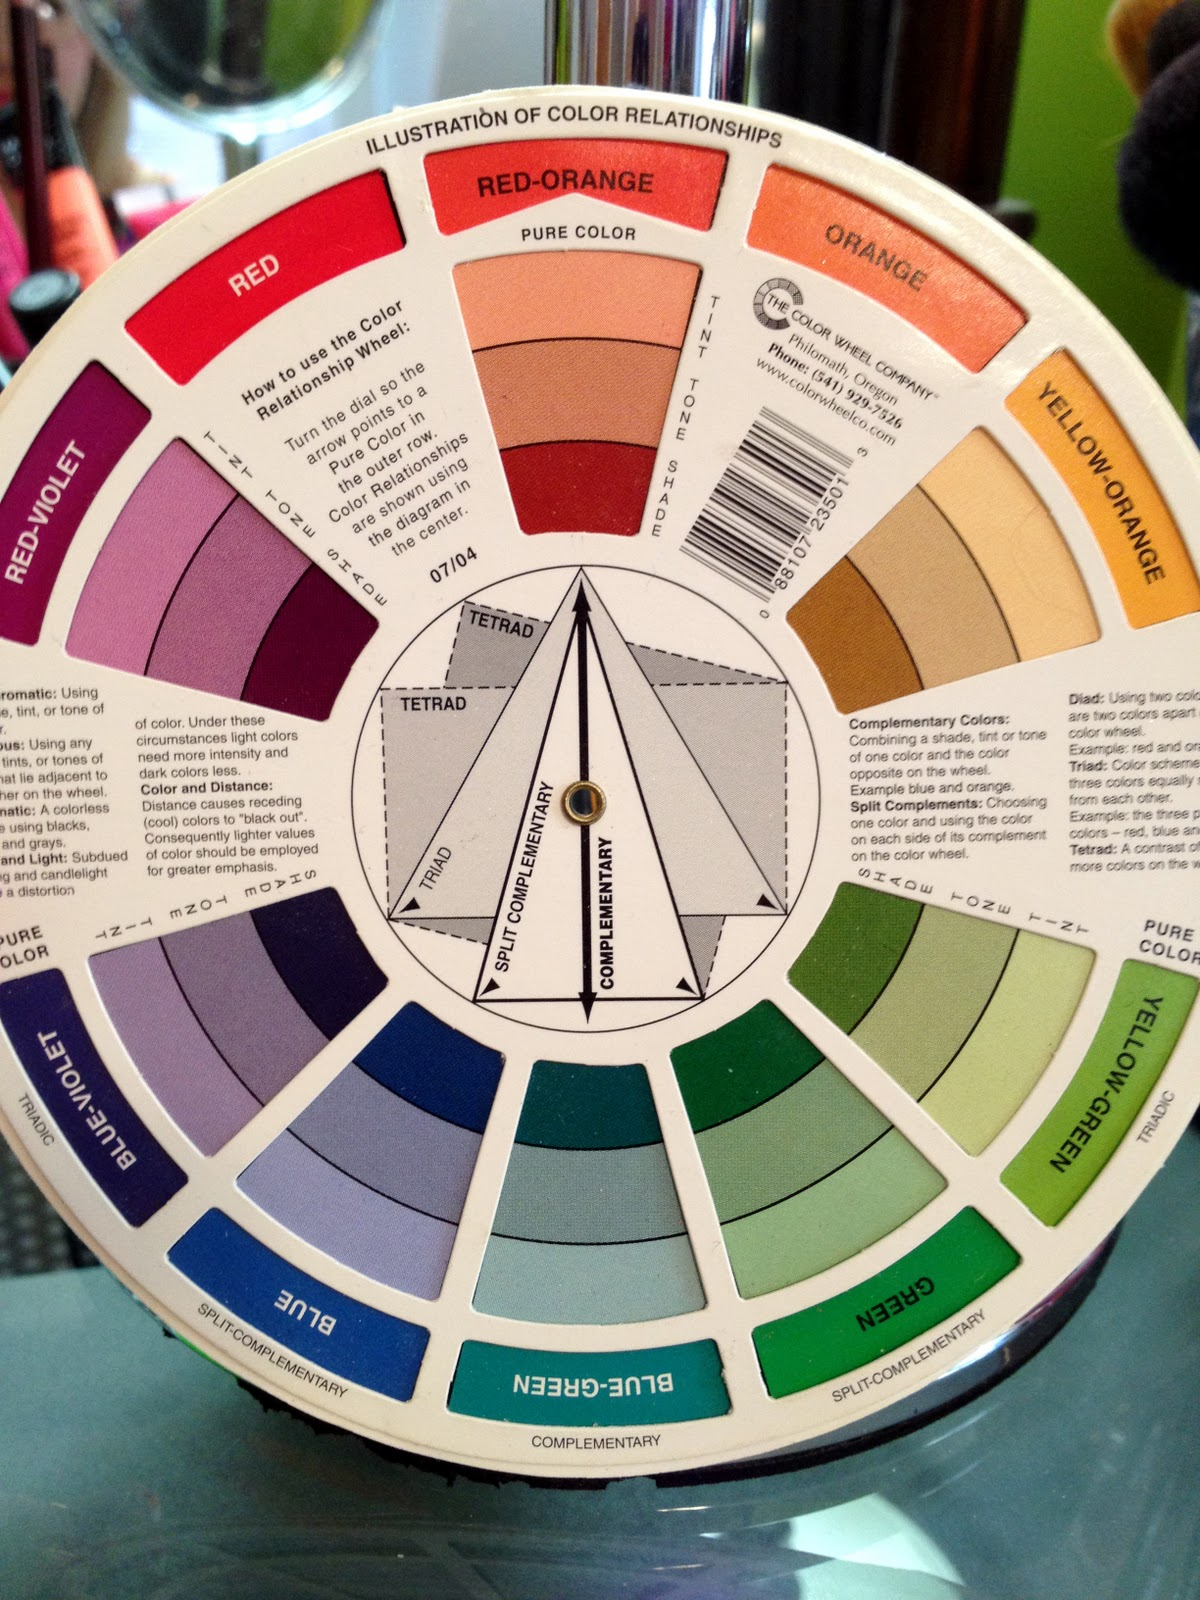 Each Color On The Wheel Has A Complementary And Split Colors Are Directly Across